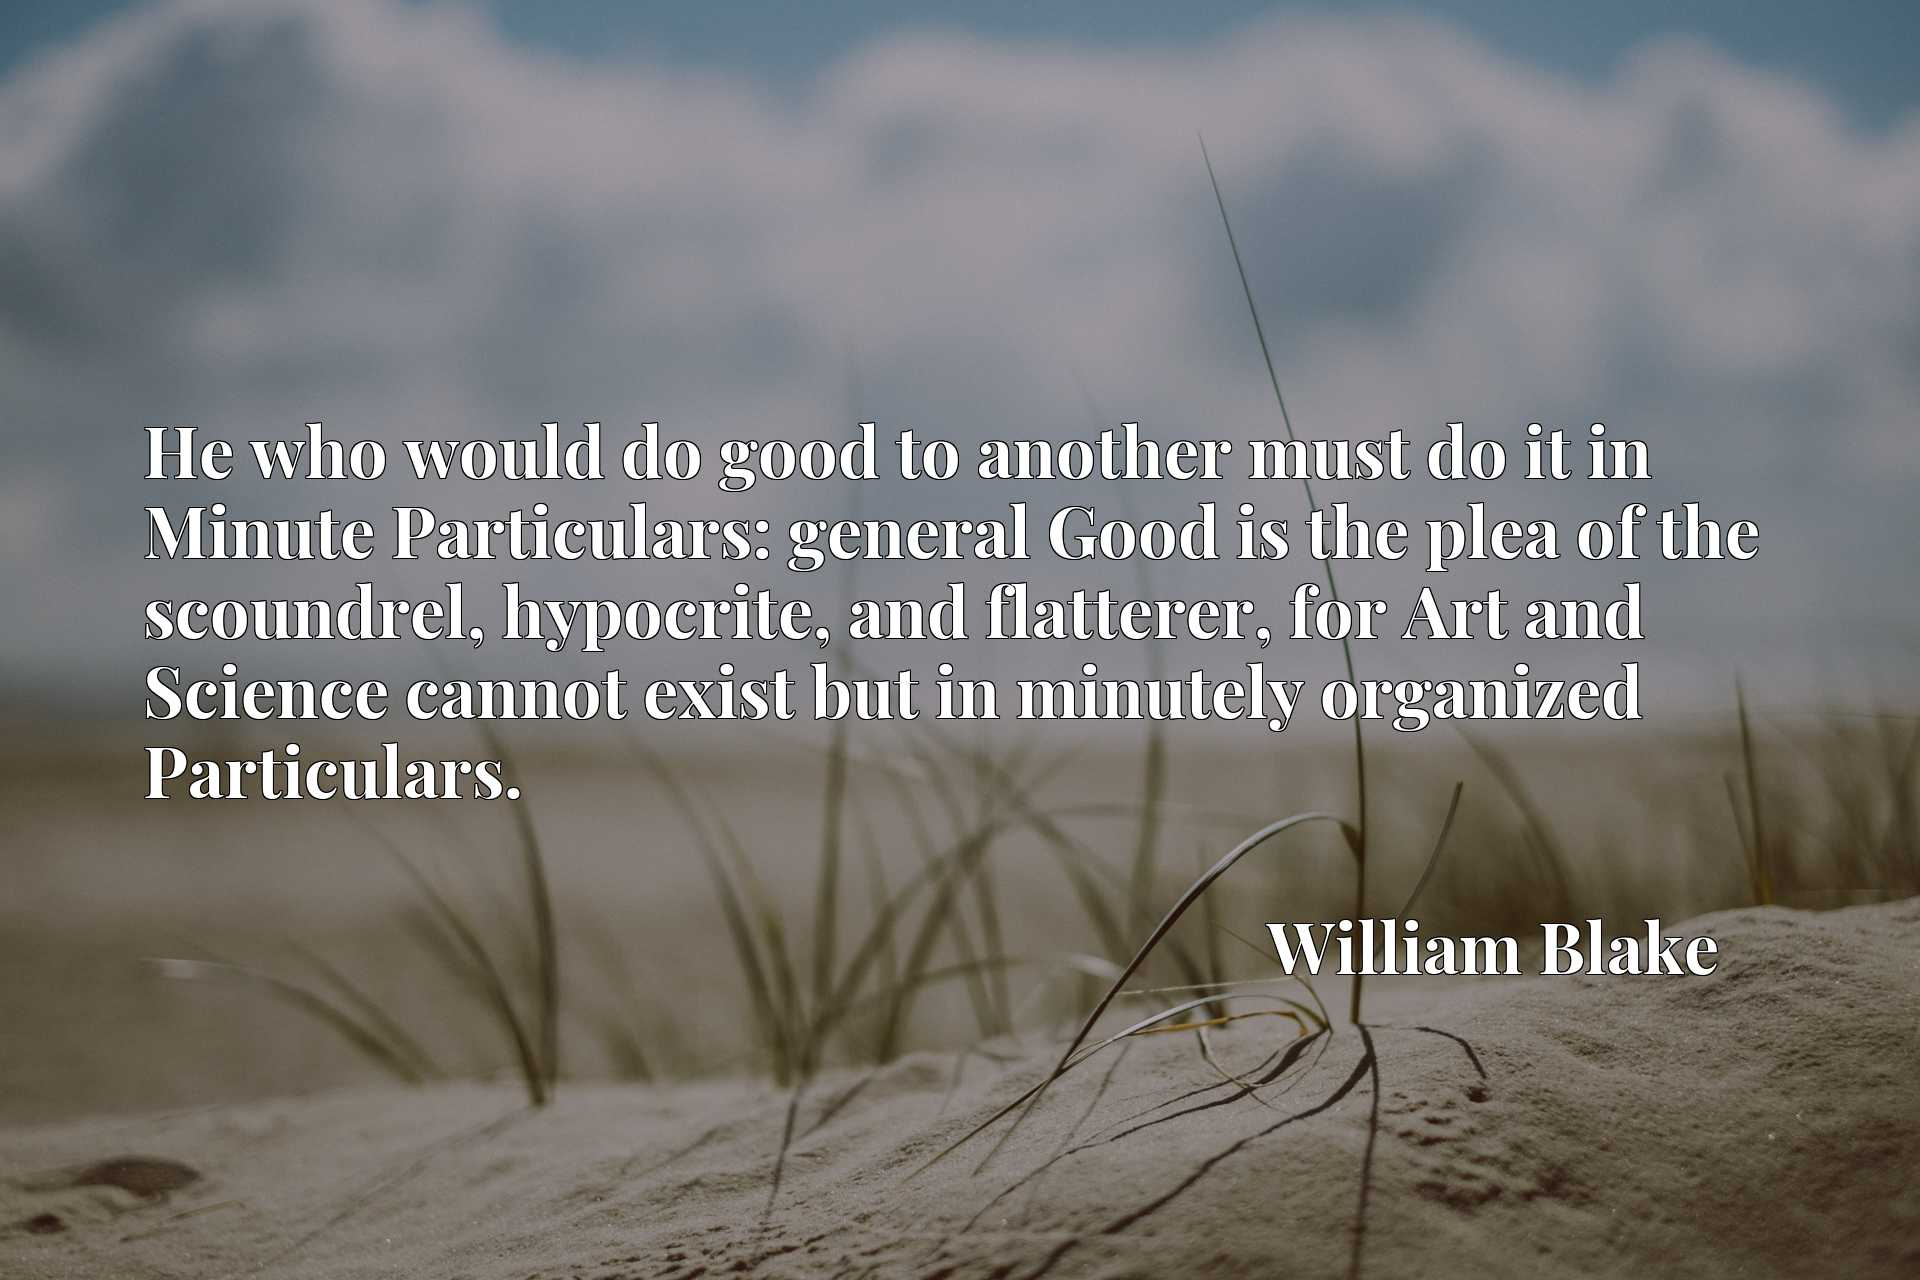 He who would do good to another must do it in Minute Particulars: general Good is the plea of the scoundrel, hypocrite, and flatterer, for Art and Science cannot exist but in minutely organized Particulars.